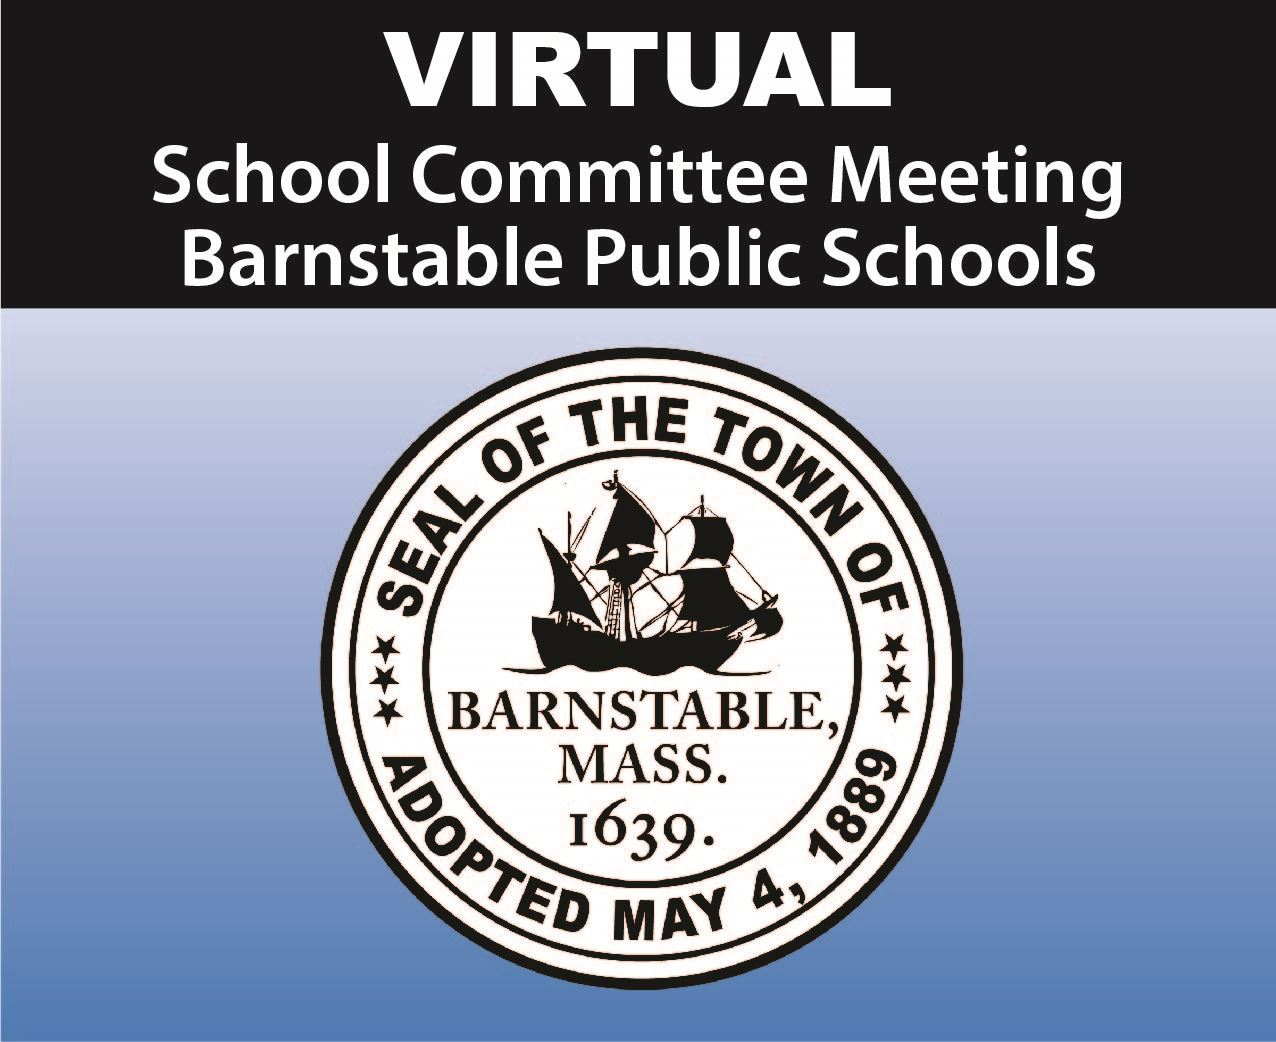 Virtual School Committee Meeting March 3, 2021